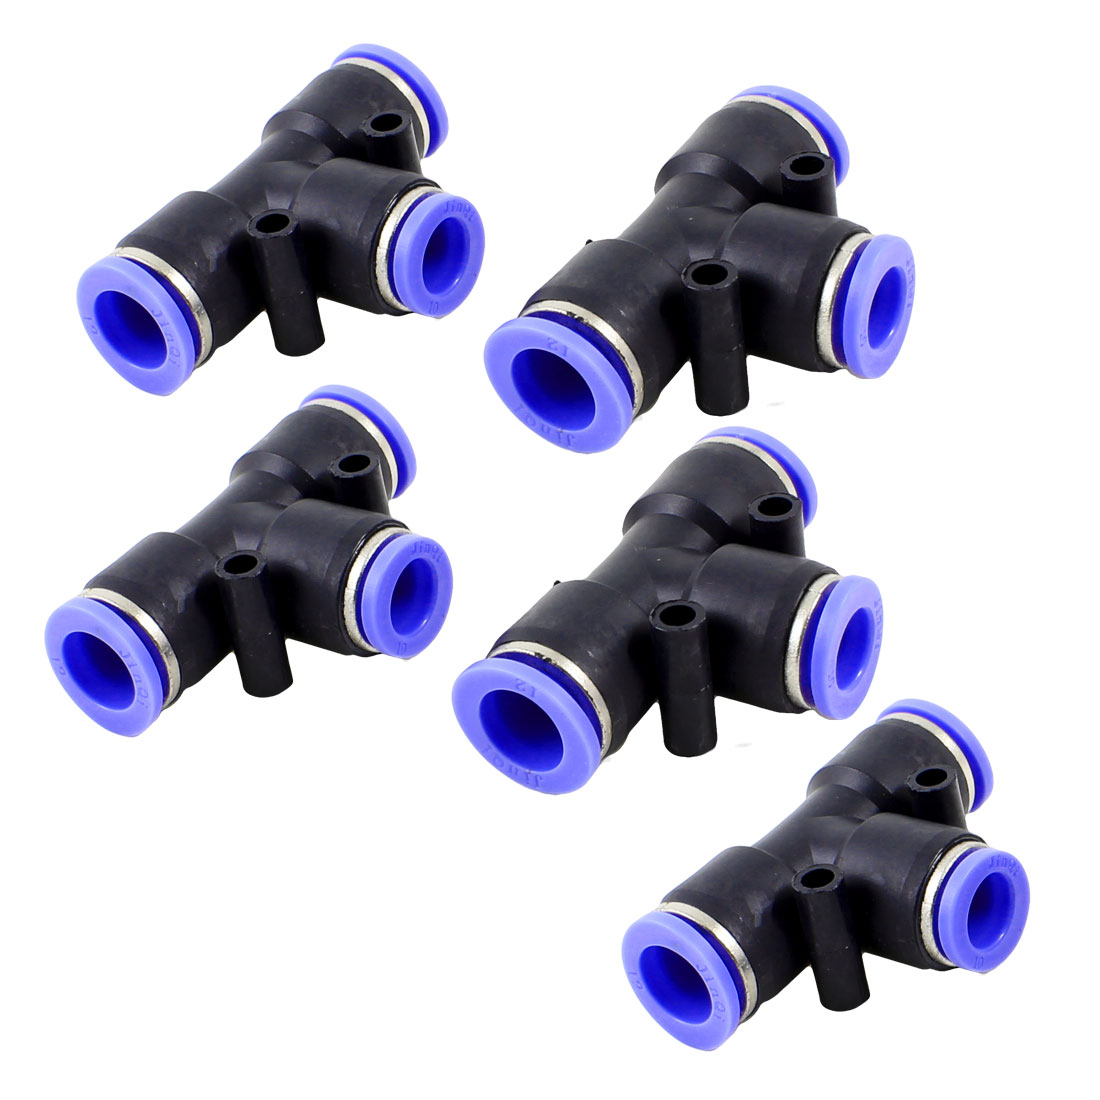 Air Pneumatic 12mm to 10mm Push In Pipe T-Joint Quick Fitting 5pcs